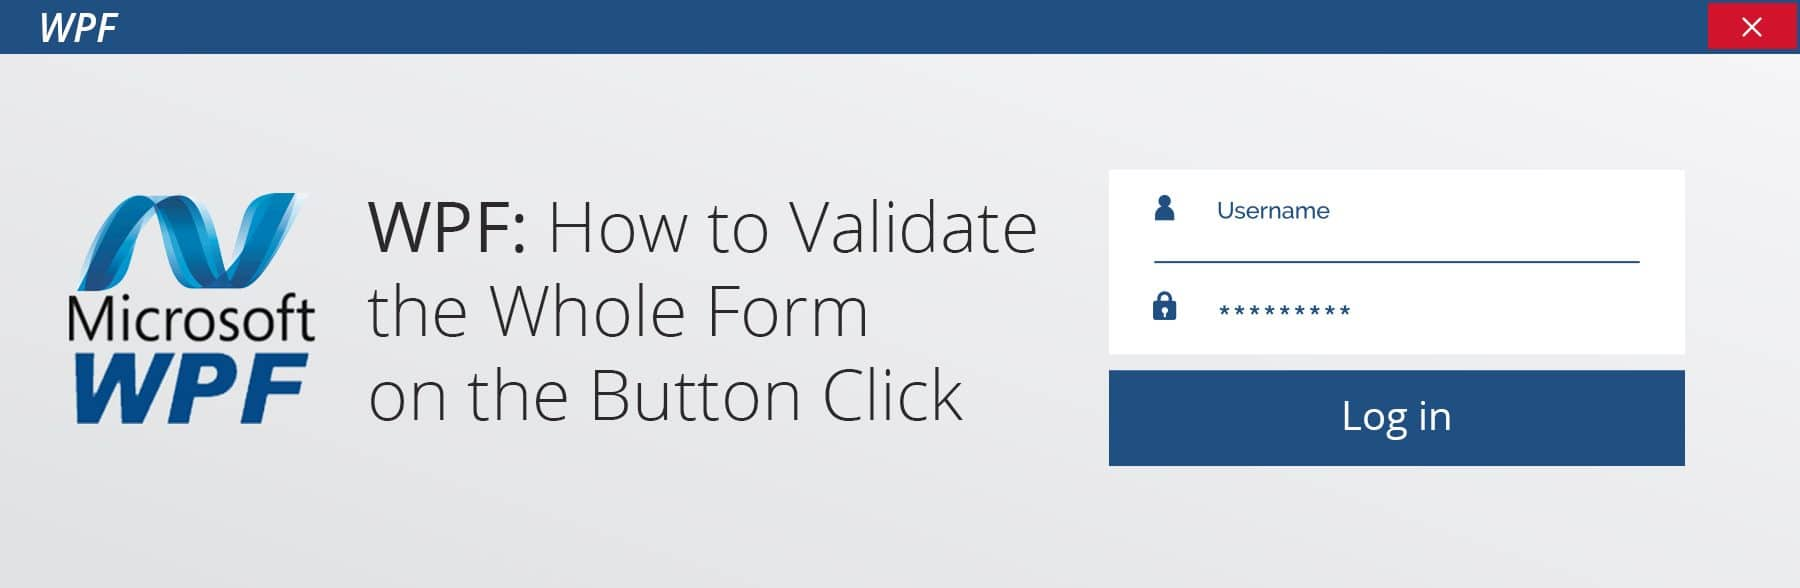 WPF Validation: How to Validate the Whole Form on the Button